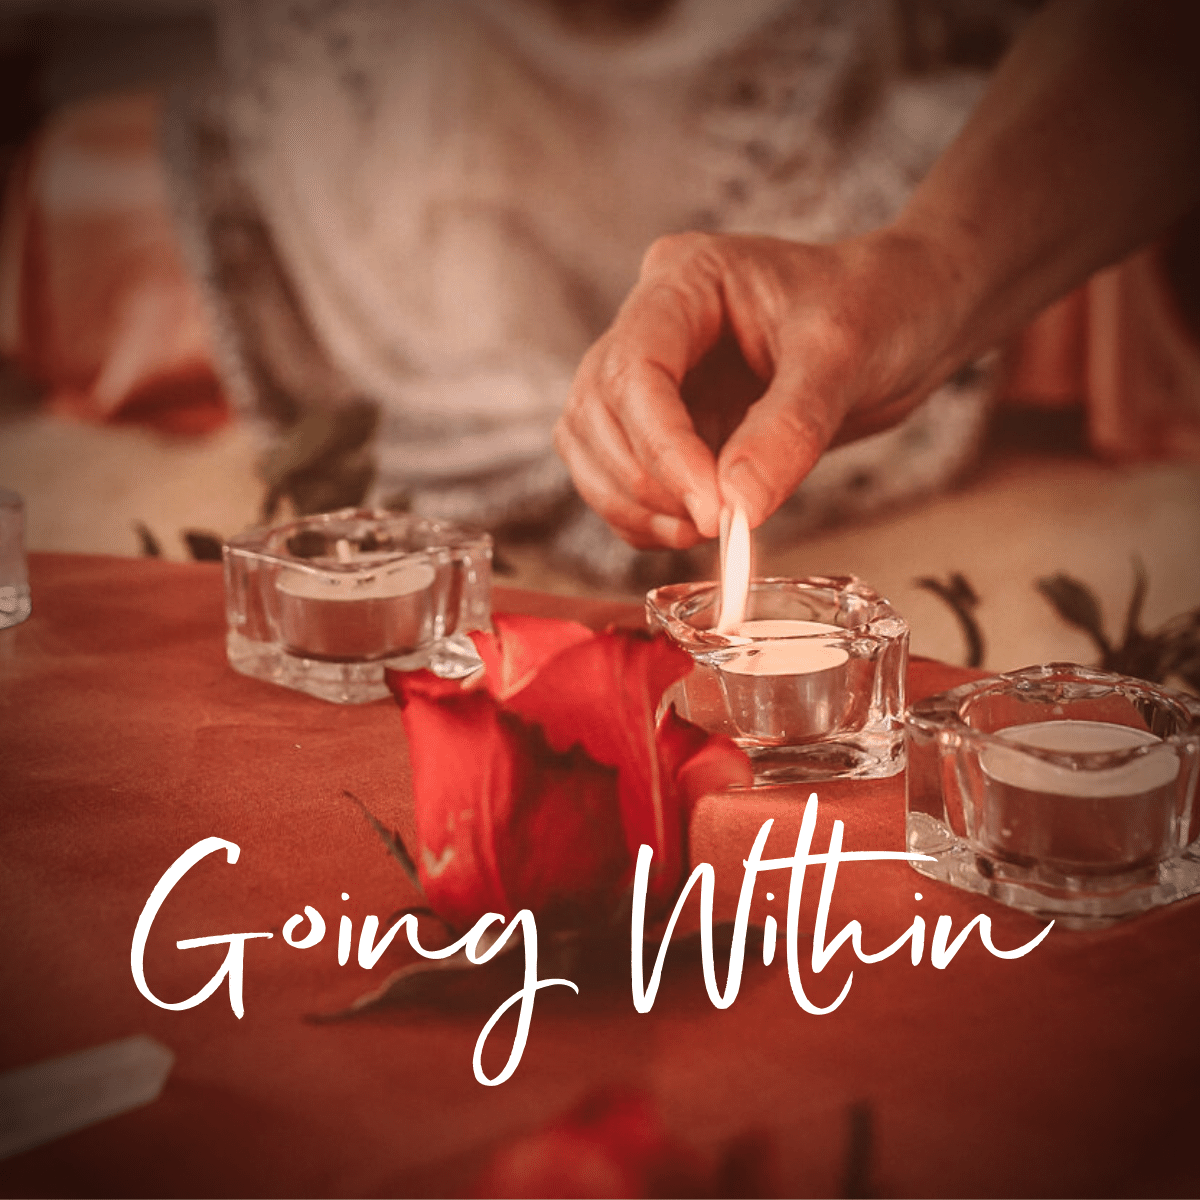 Copy of going within (2)